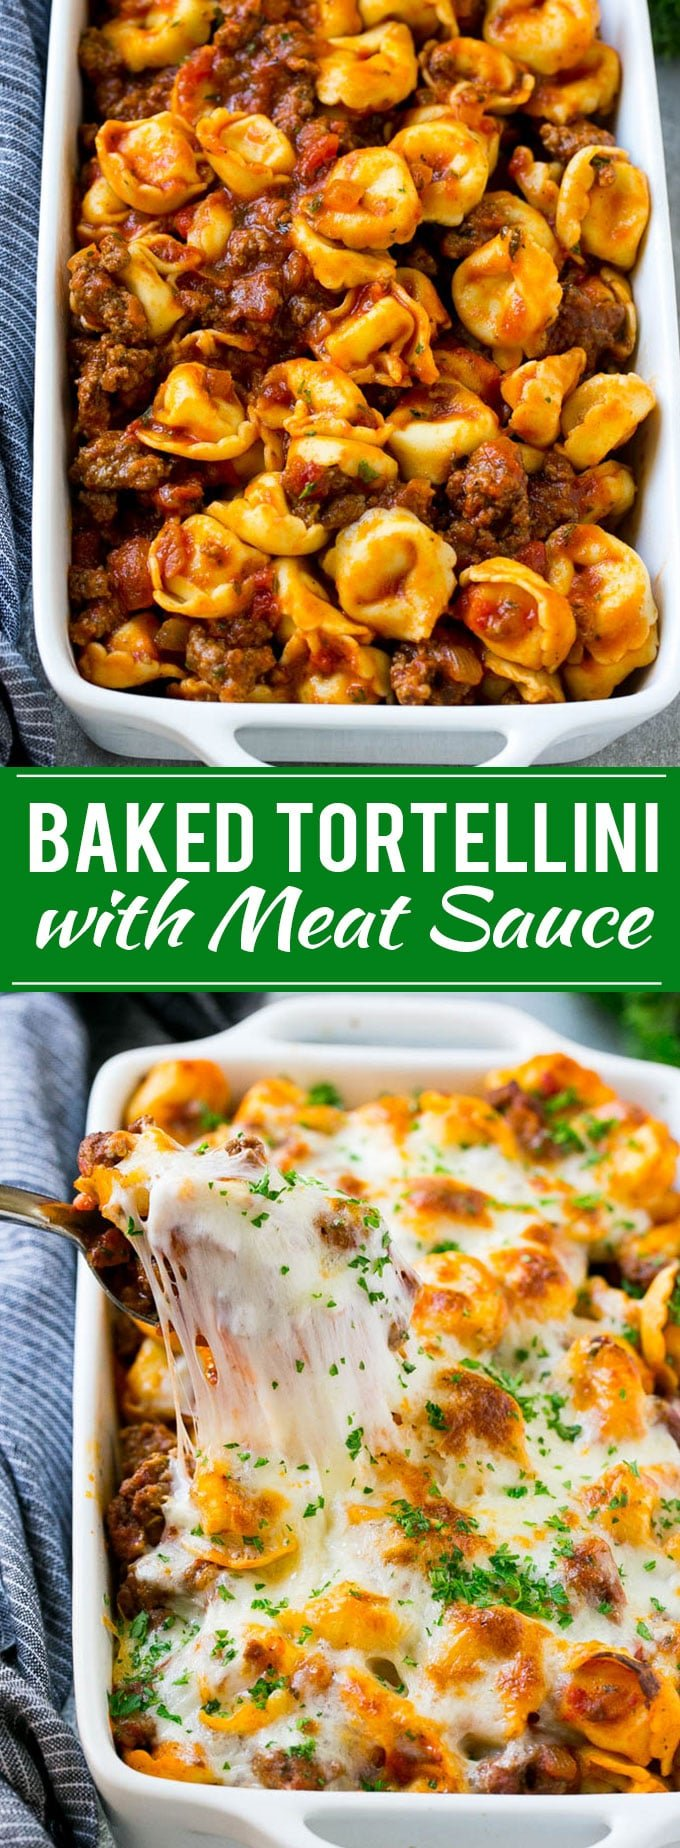 Baked Tortellini with Meat Sauce Recipe | Cheese Tortellini | Tortellini Recipe | Baked Pasta Recipe